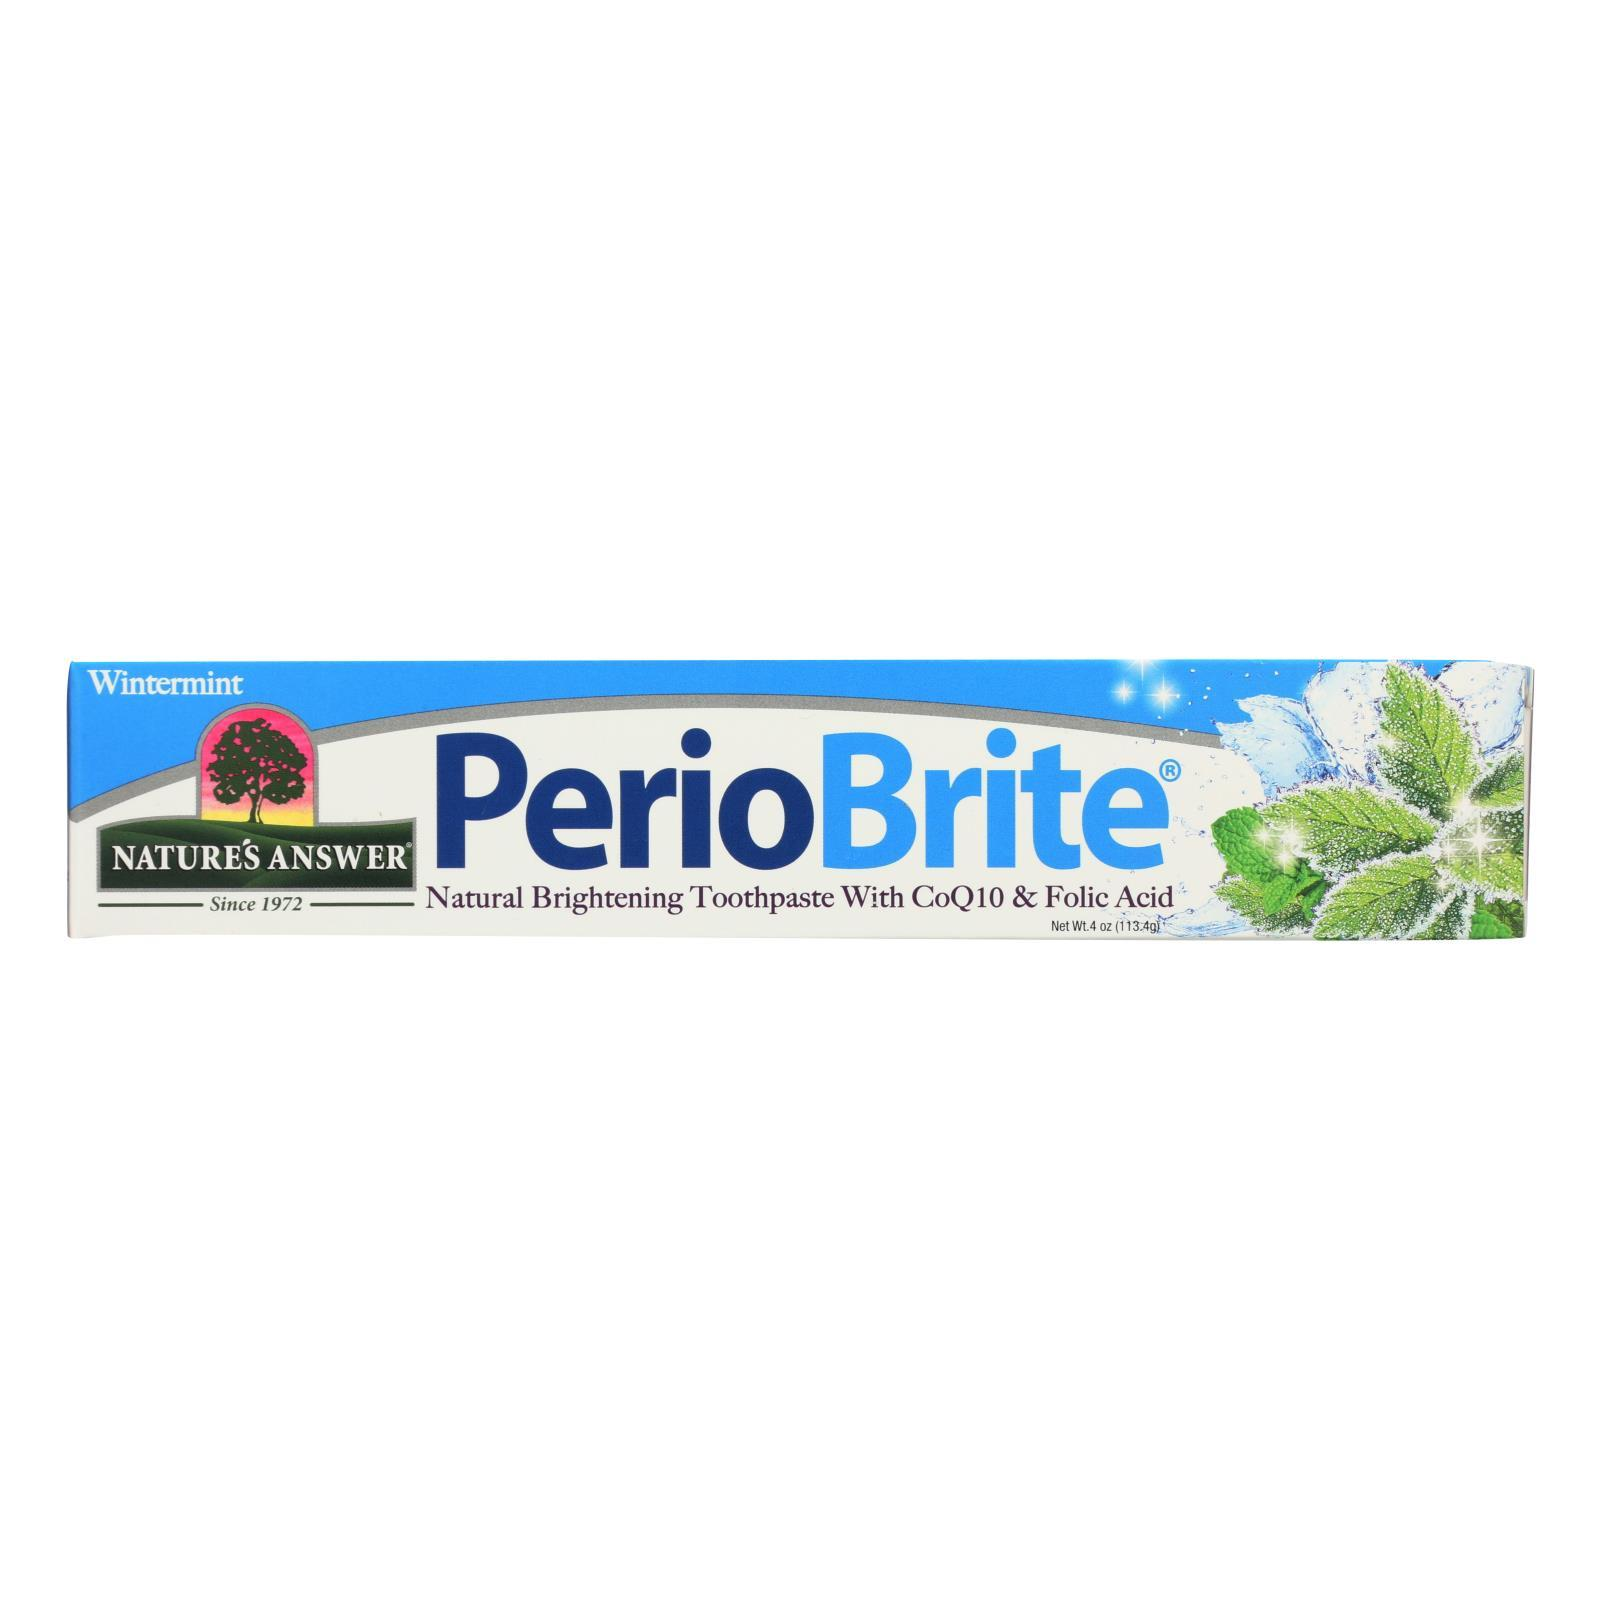 Nature's Answer Periobrite Wintermint Natural Brightening Toothpaste - 1 Each - 4 Oz - BeeGreen